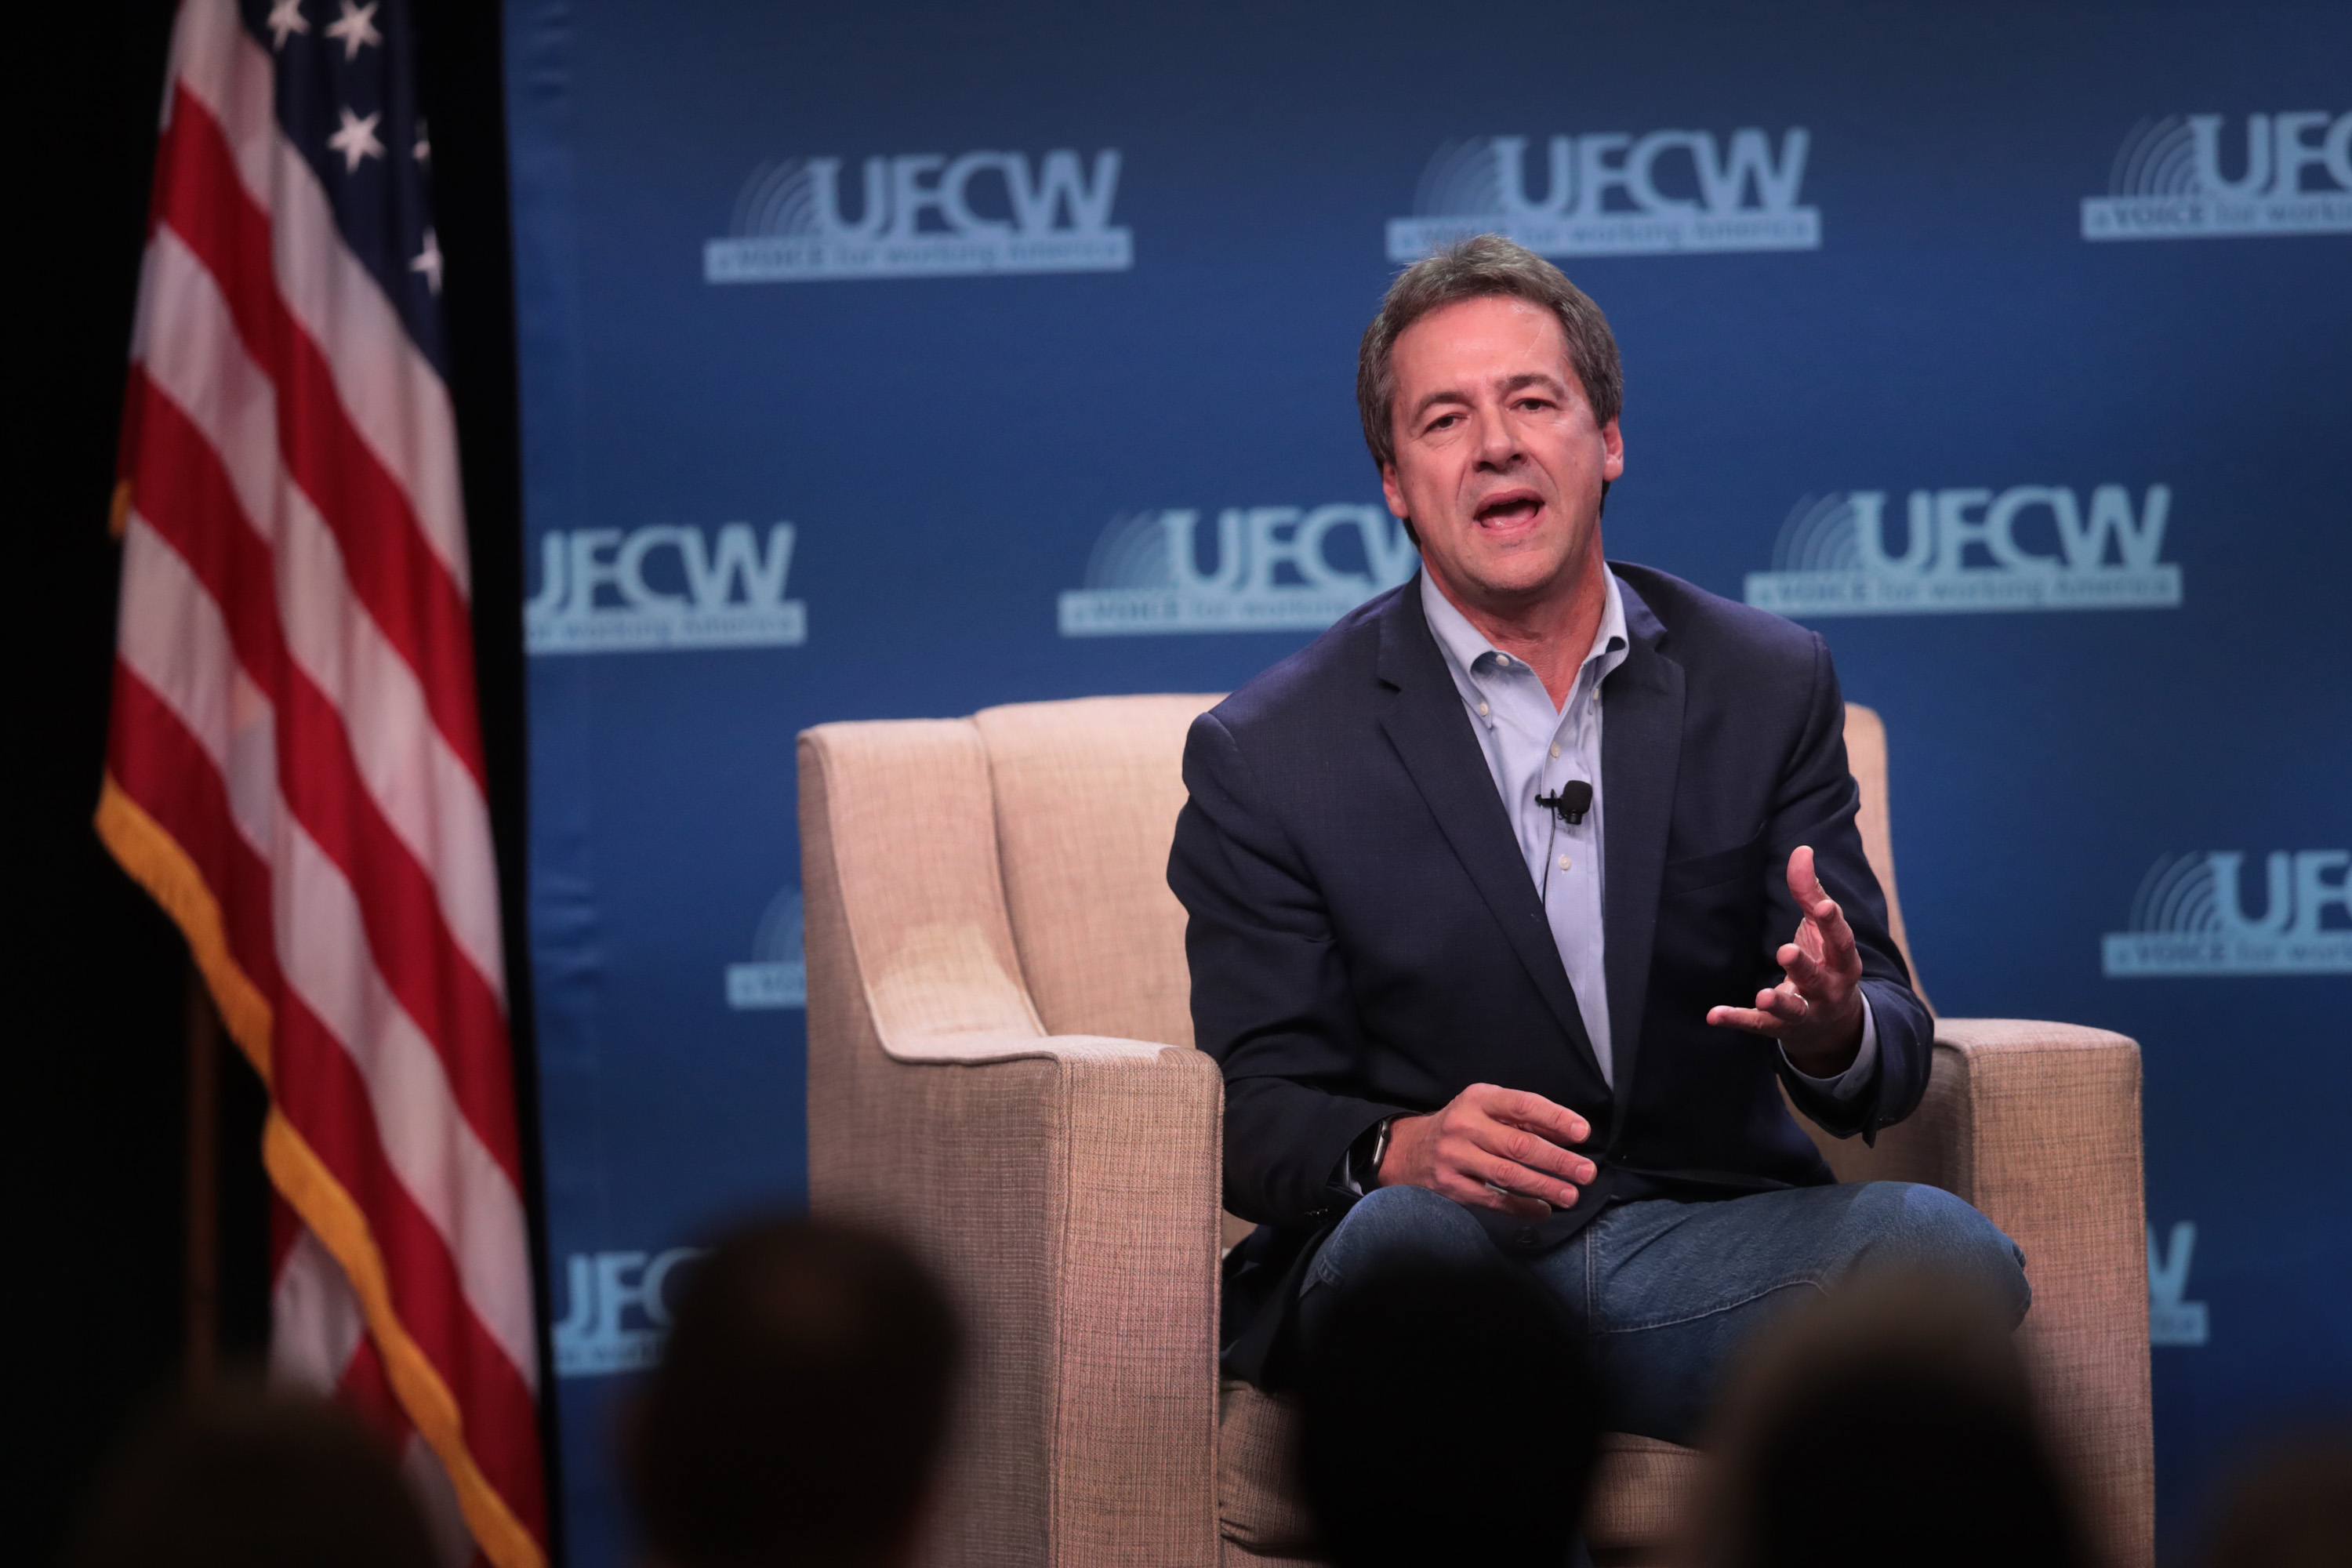 ALTOONA, IOWA - OCTOBER 13: Democratic presidential candidate Montana governor Steve Bullock speaks to guests at the United Food and Commercial Workers' (UFCW) 2020 presidential candidate forum on October 13, 2019 in Altoona, Iowa. (Scott Olson/Getty Images)